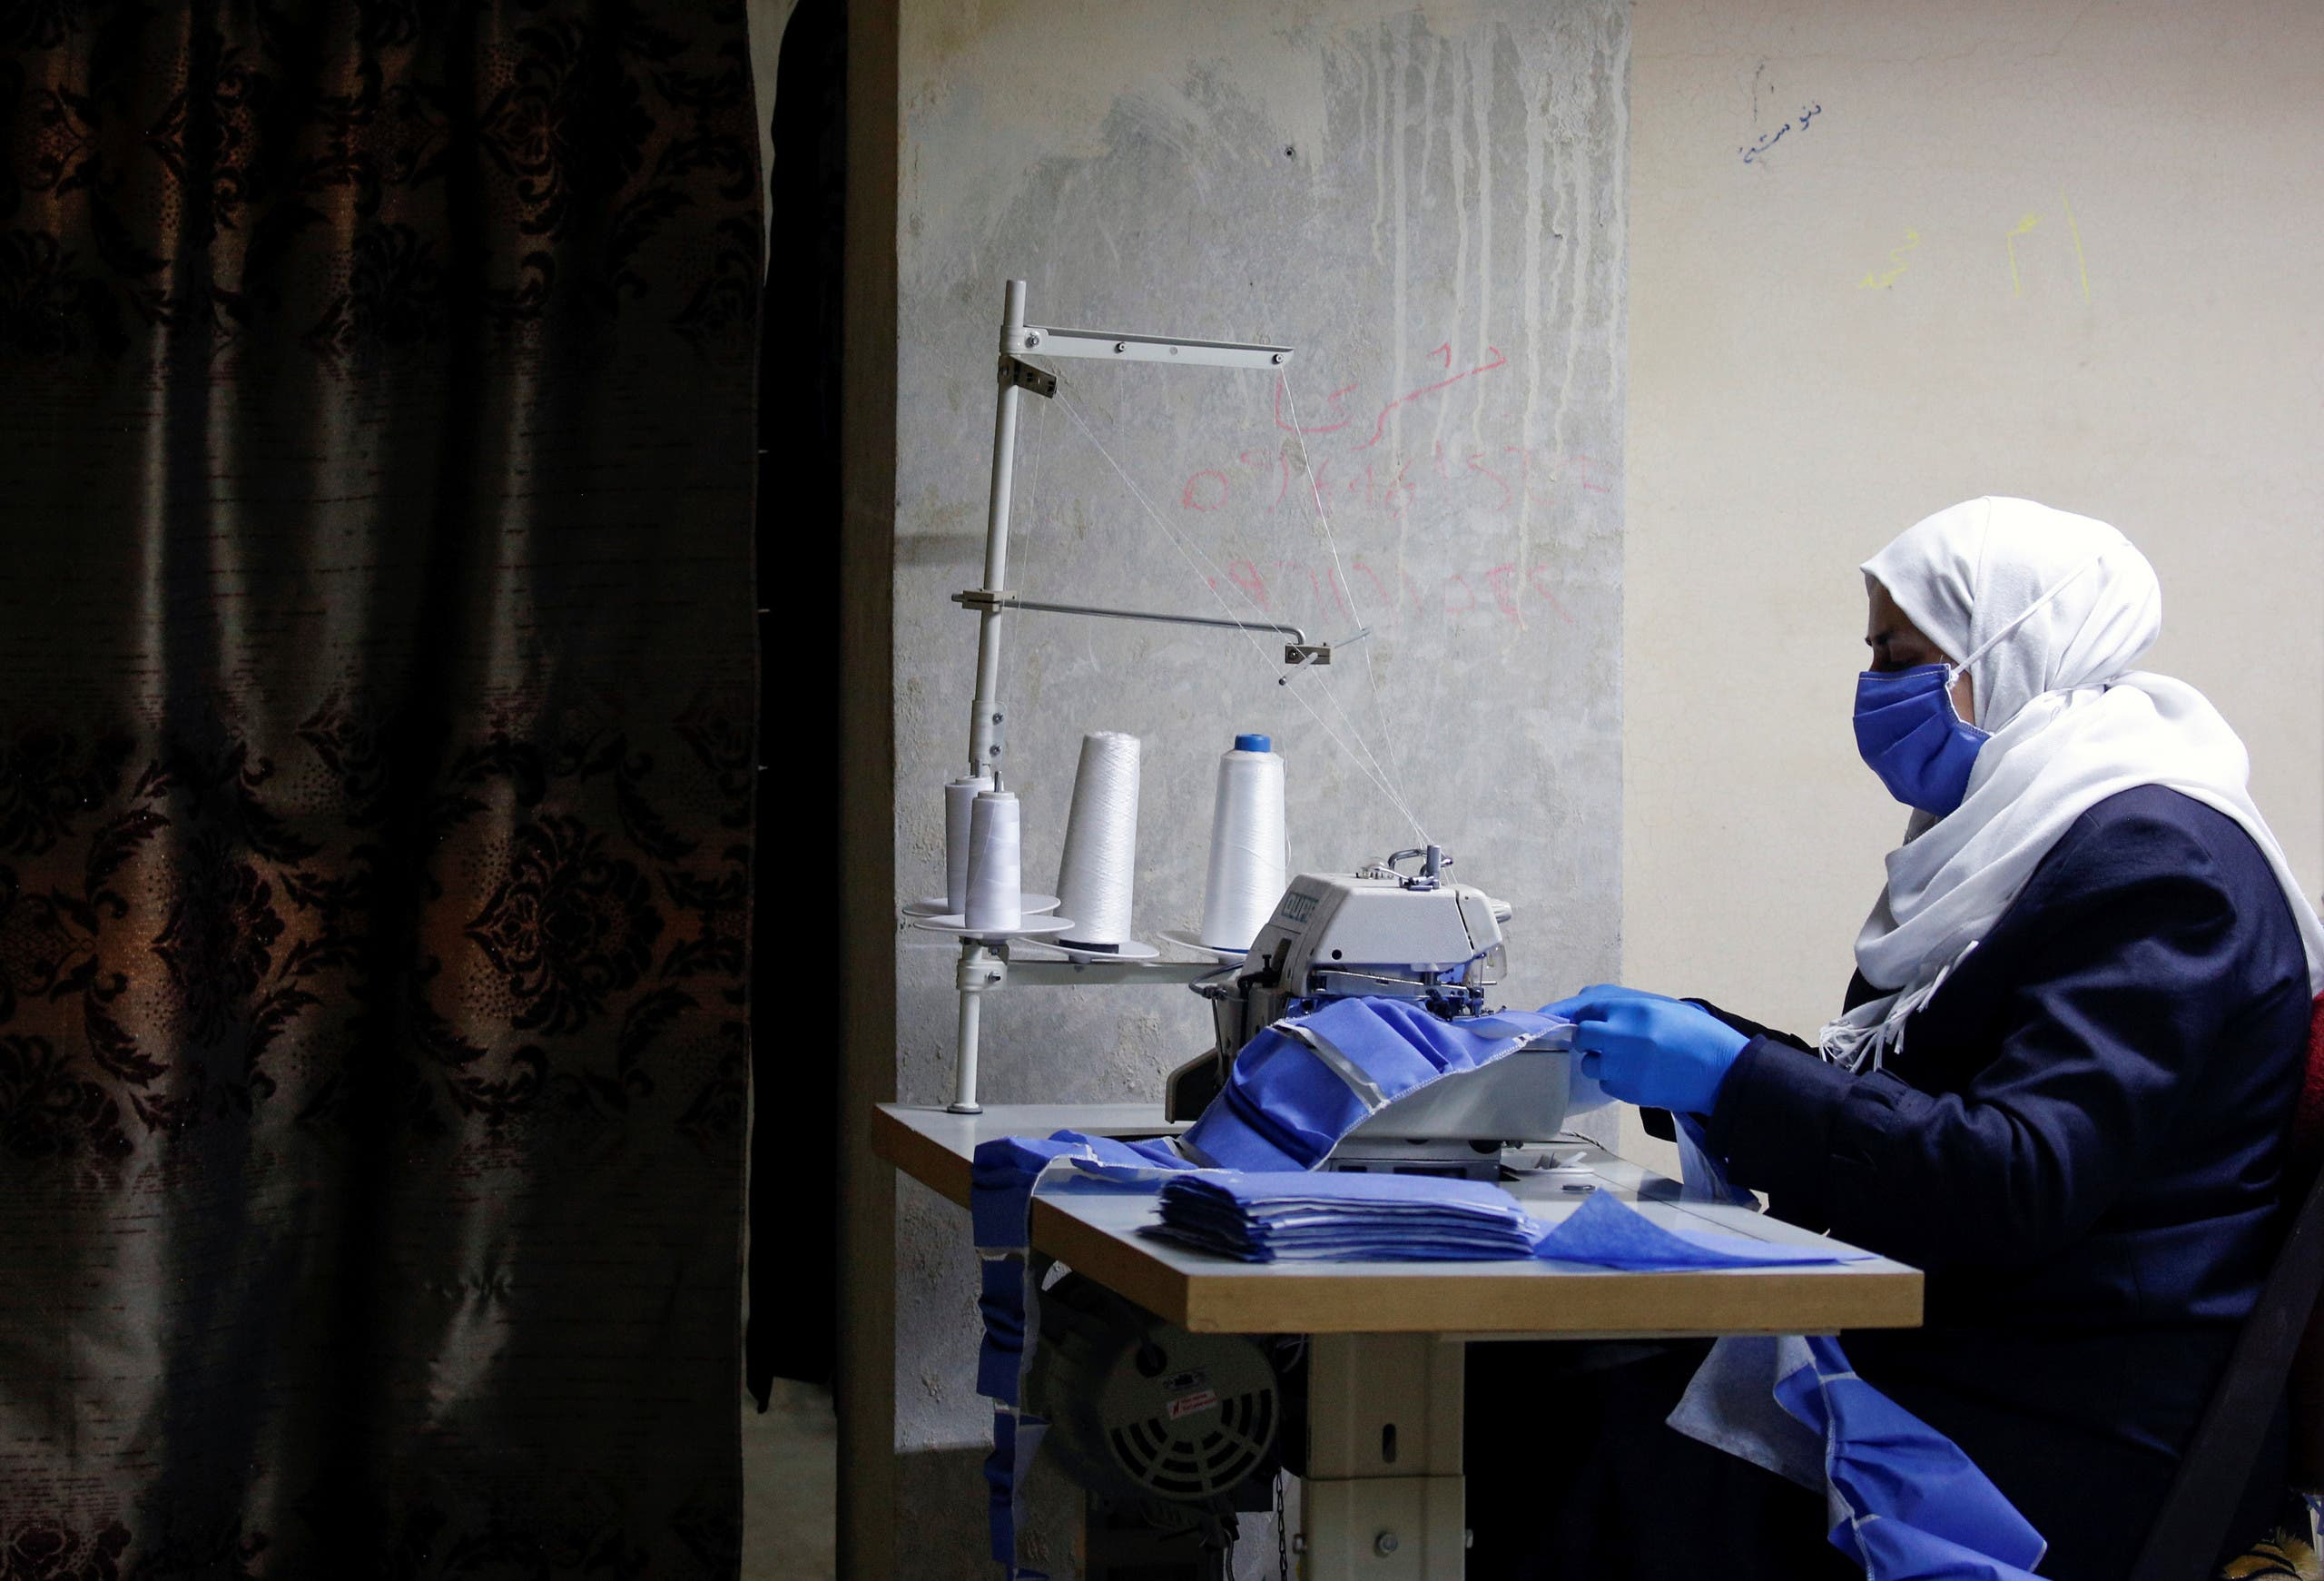 Workers make face masks in order to provide help to healthcare workers and hospitals to face the spread of coronavirus disease (COVID-19) at an atelier in Damascus, Syria April 16, 2020. (Reuters)